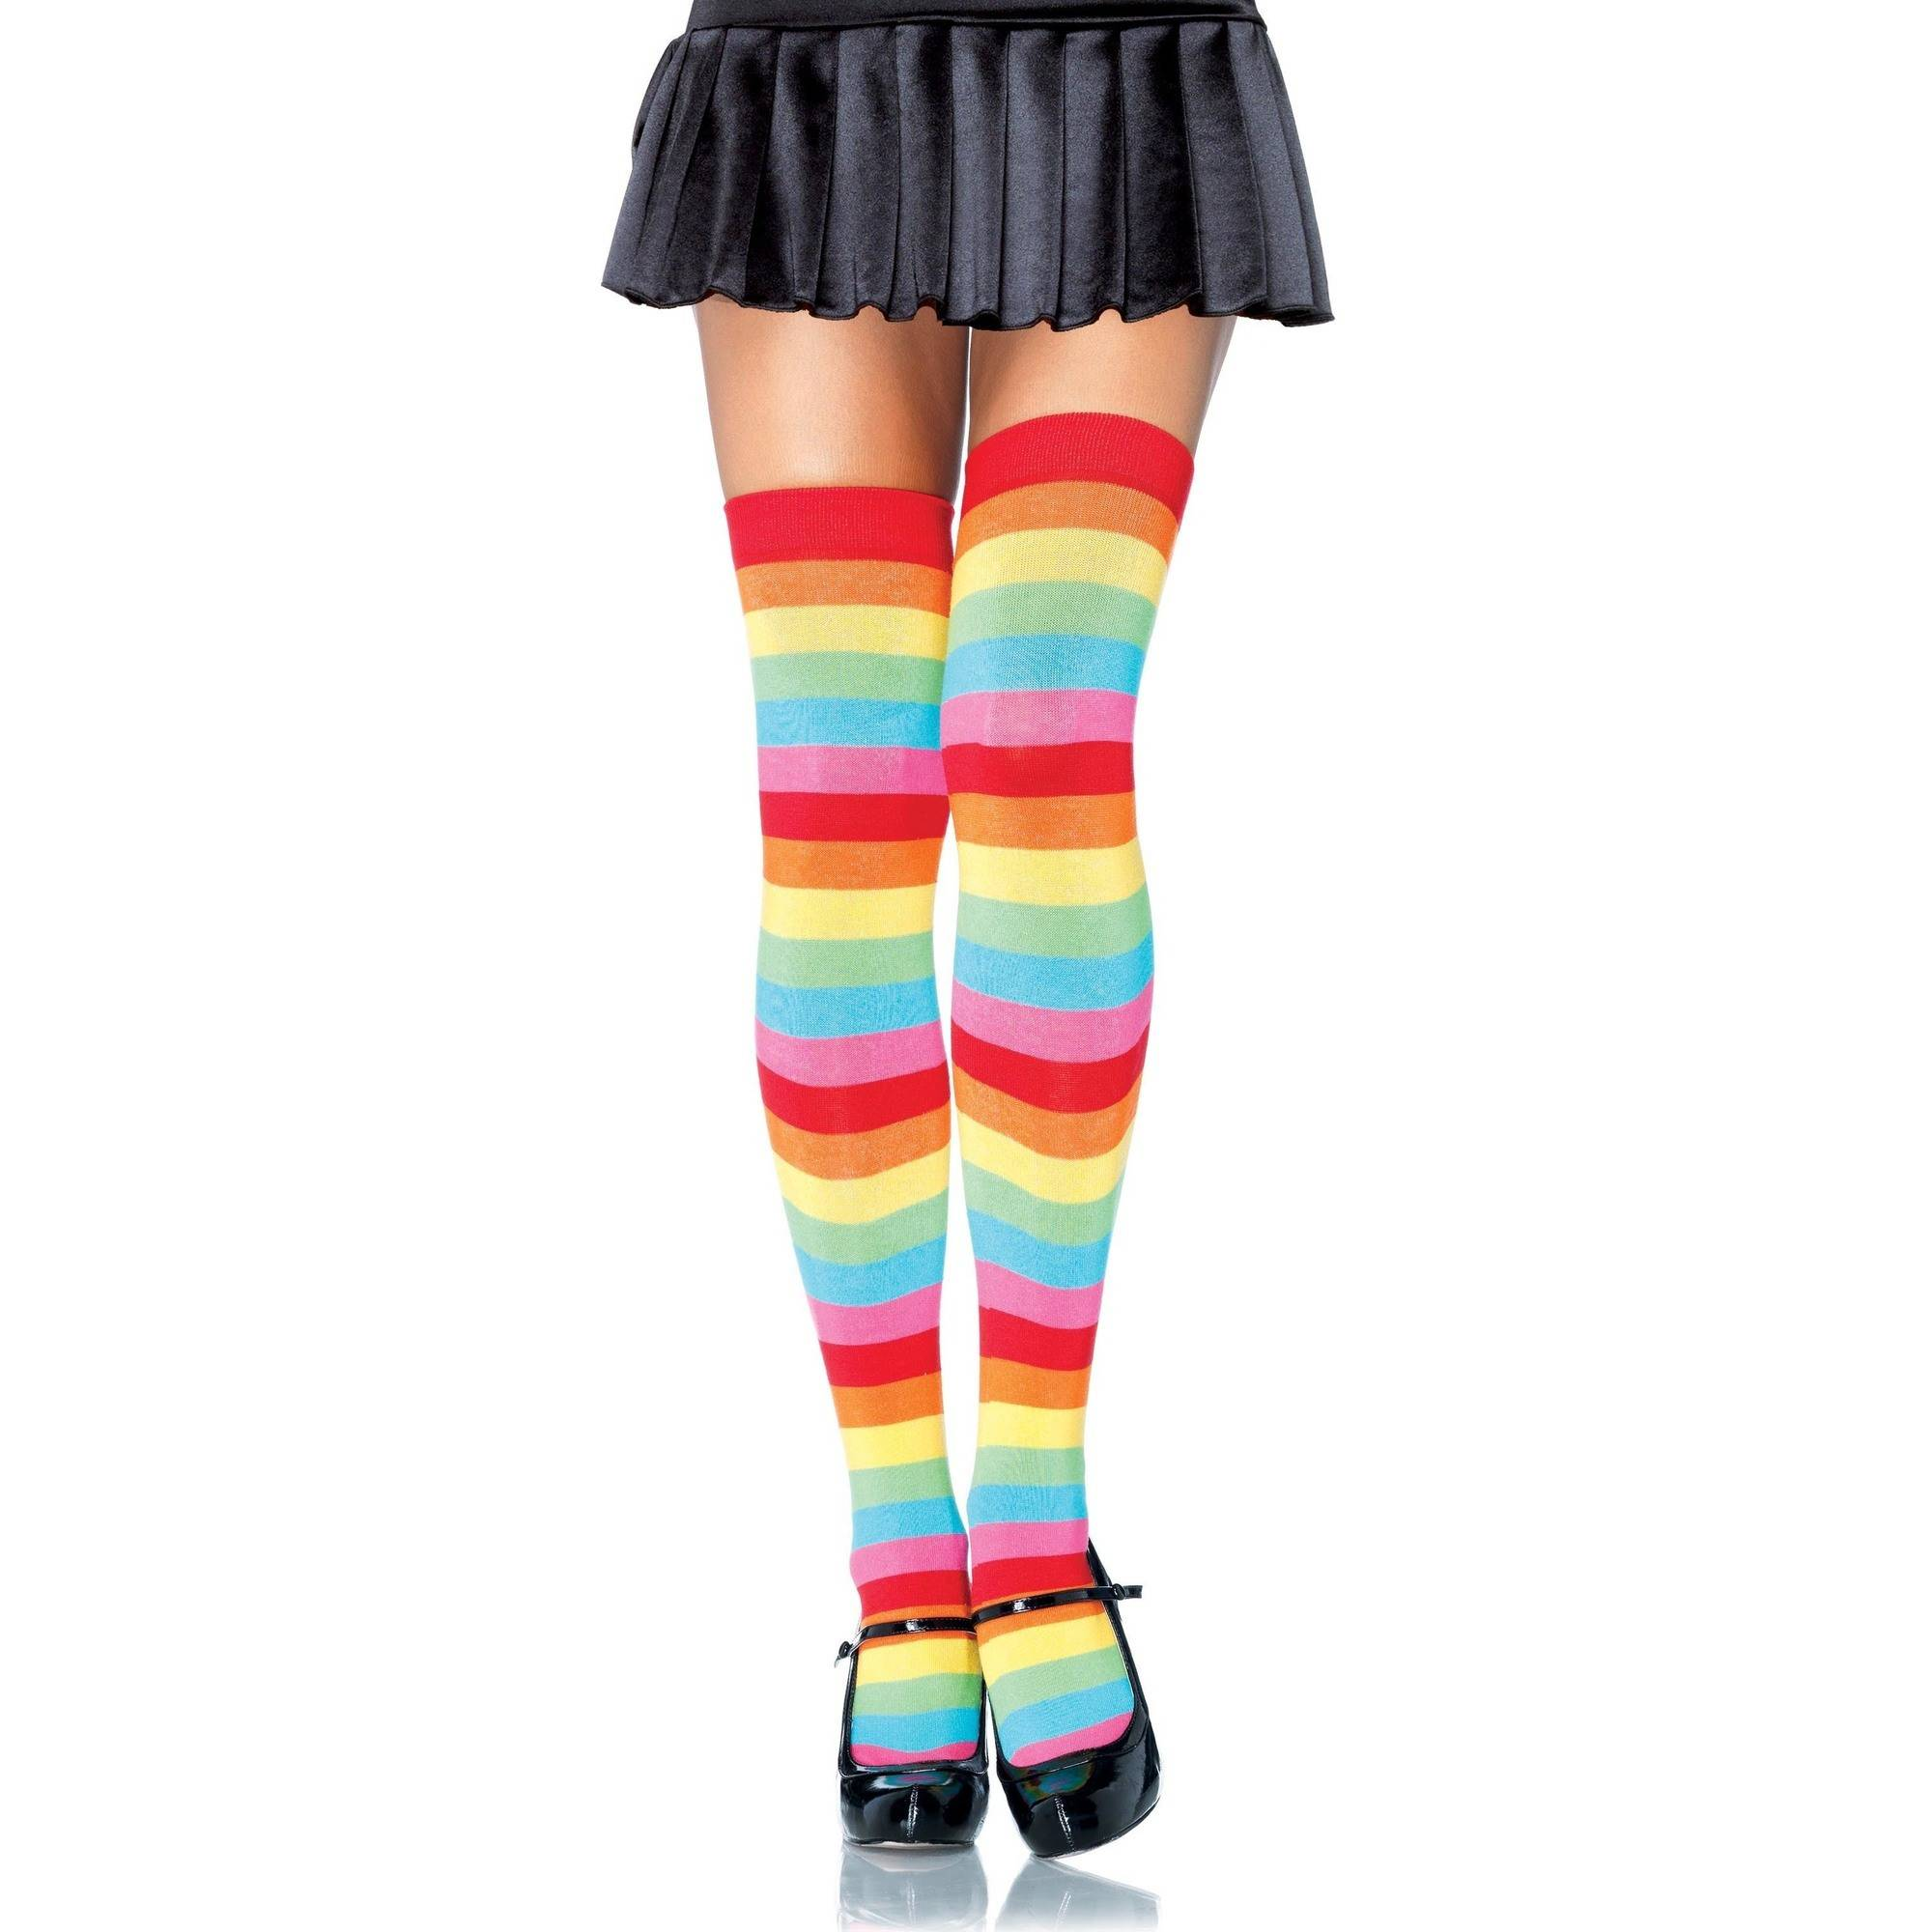 Neon Rainbow Thigh Highs Halloween Costume Accessory